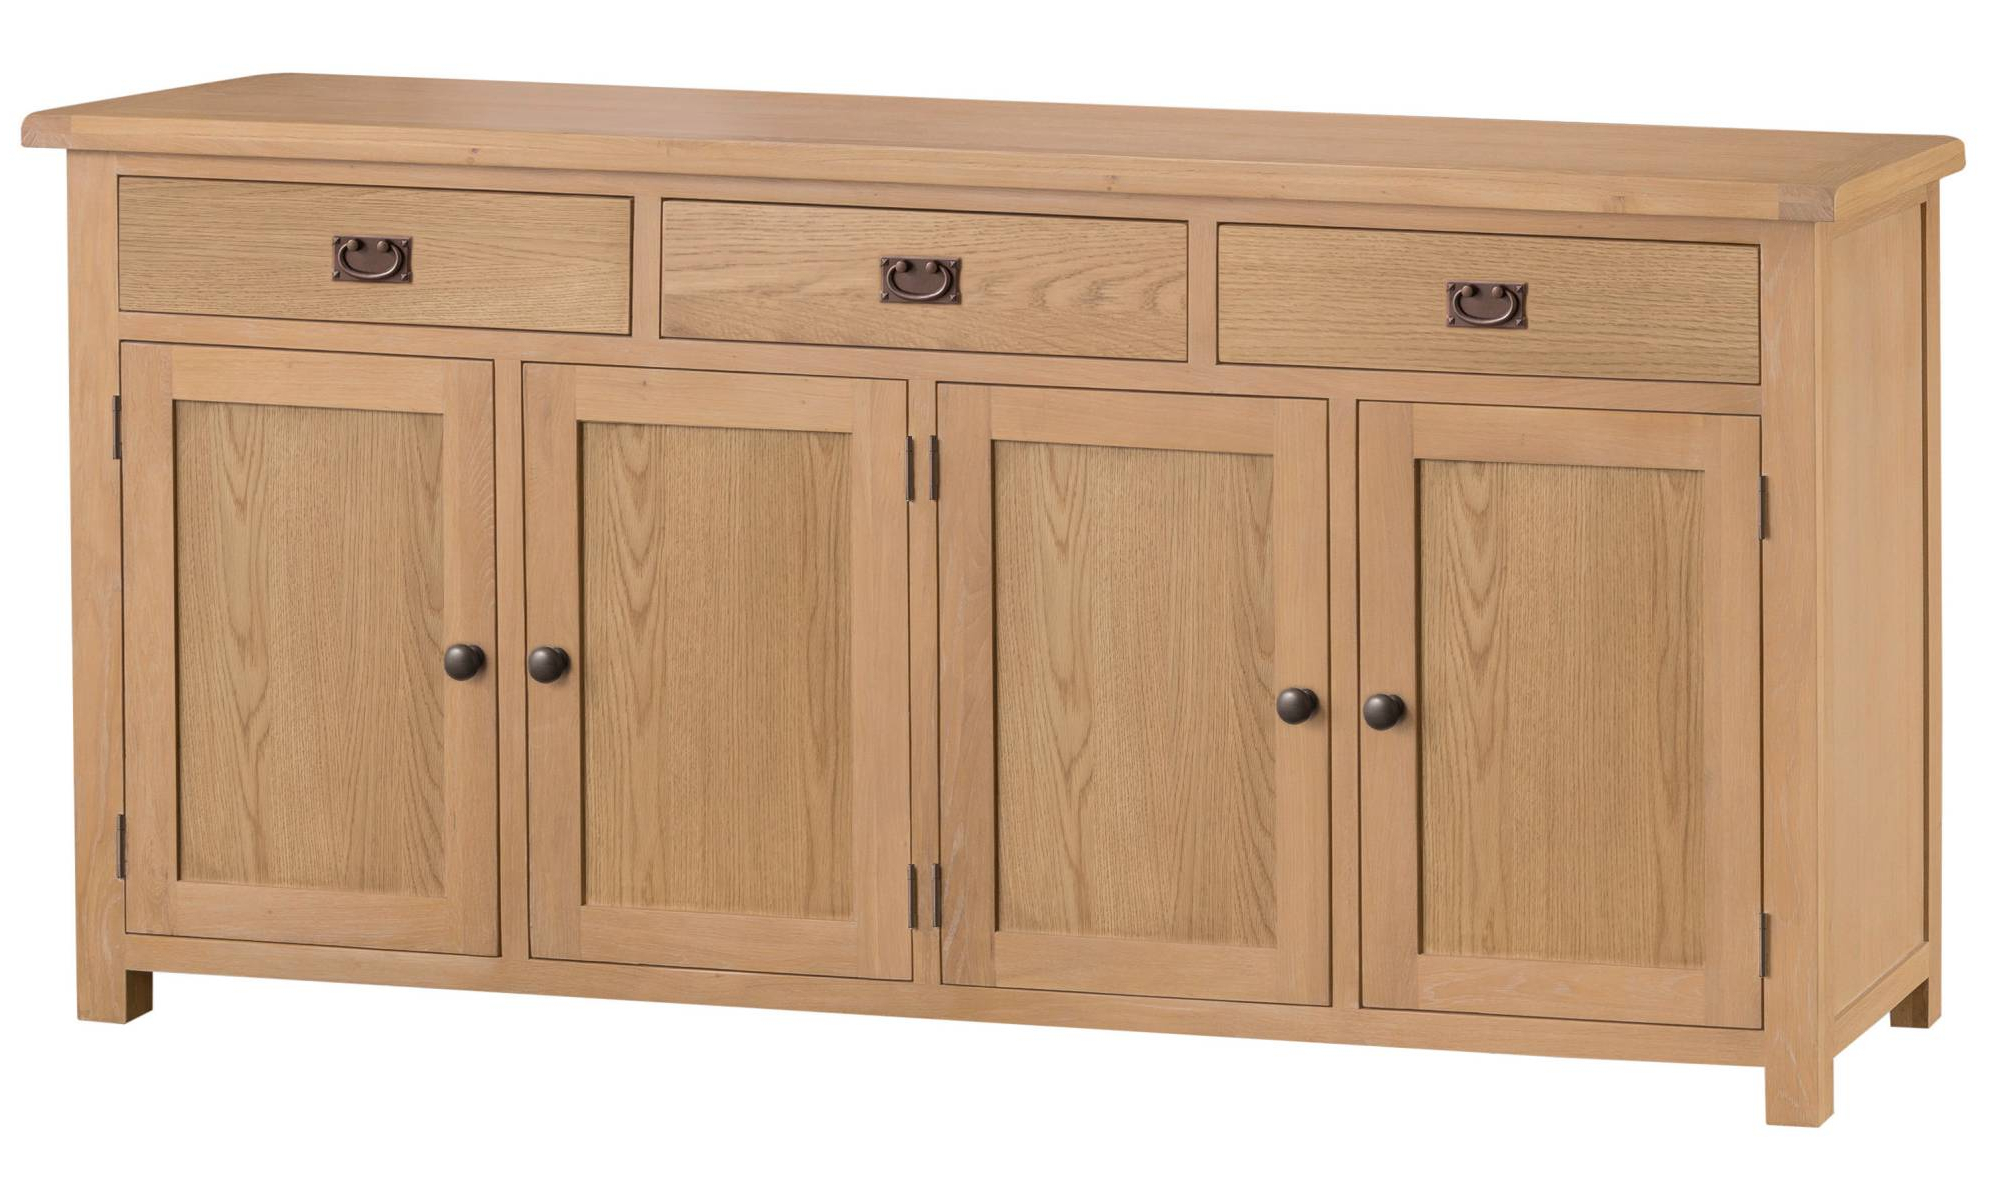 Vintage Finish 4 Door Sideboards Intended For Widely Used Edinburgh 4 Door Sideboard – Lpc Furniture (View 16 of 20)